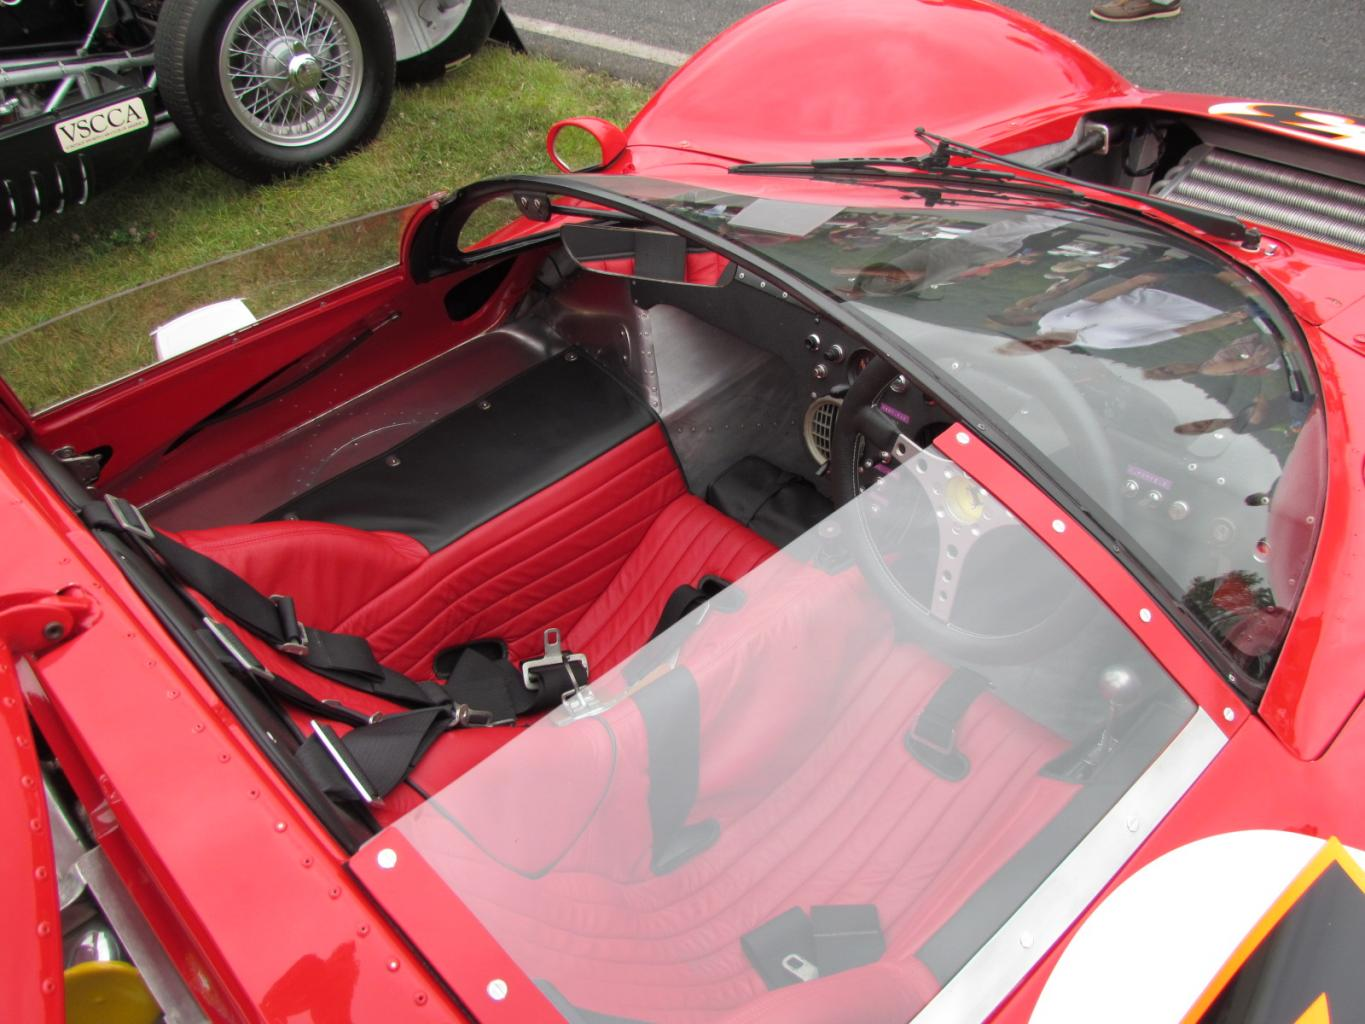 Ferrari P 3/4 0846 Driving To Concours's-img_6734-jpg